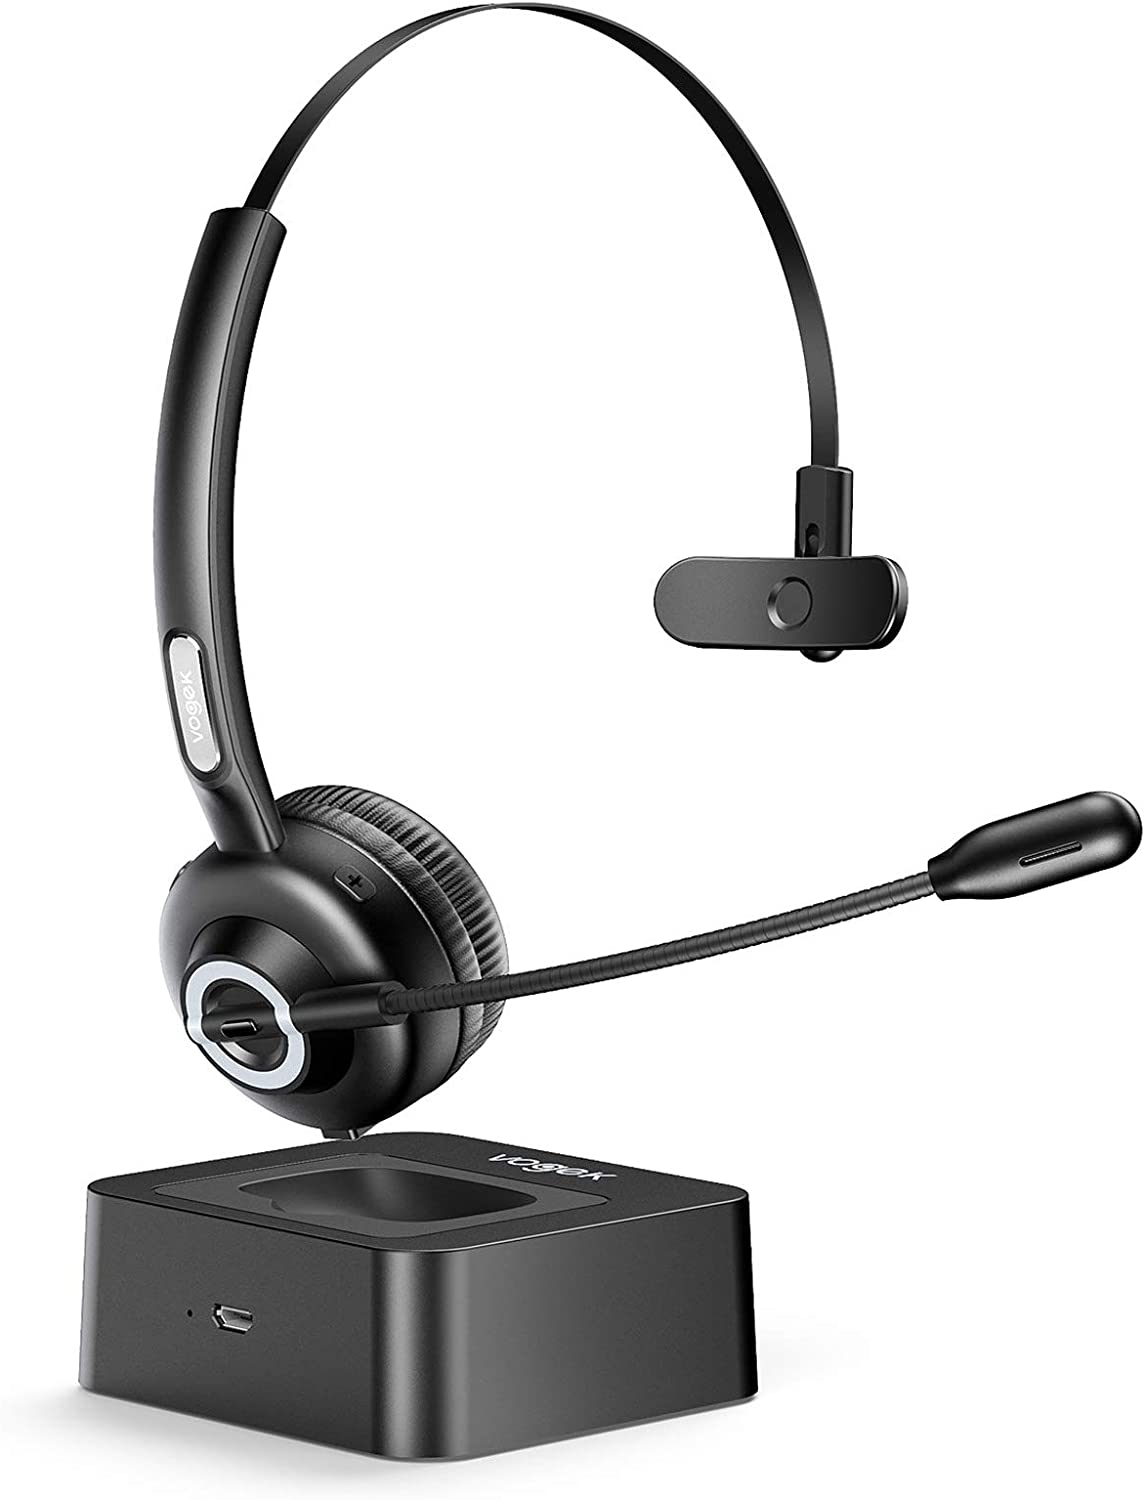 Trucker Bluetooth Headset with Microphone, Vogek Noise Cancelling Mic Wireless Headphones with Charging Base, Clear Hands-Free Comfort-fit Headset for Home Office Online Class PC Call Center Skype